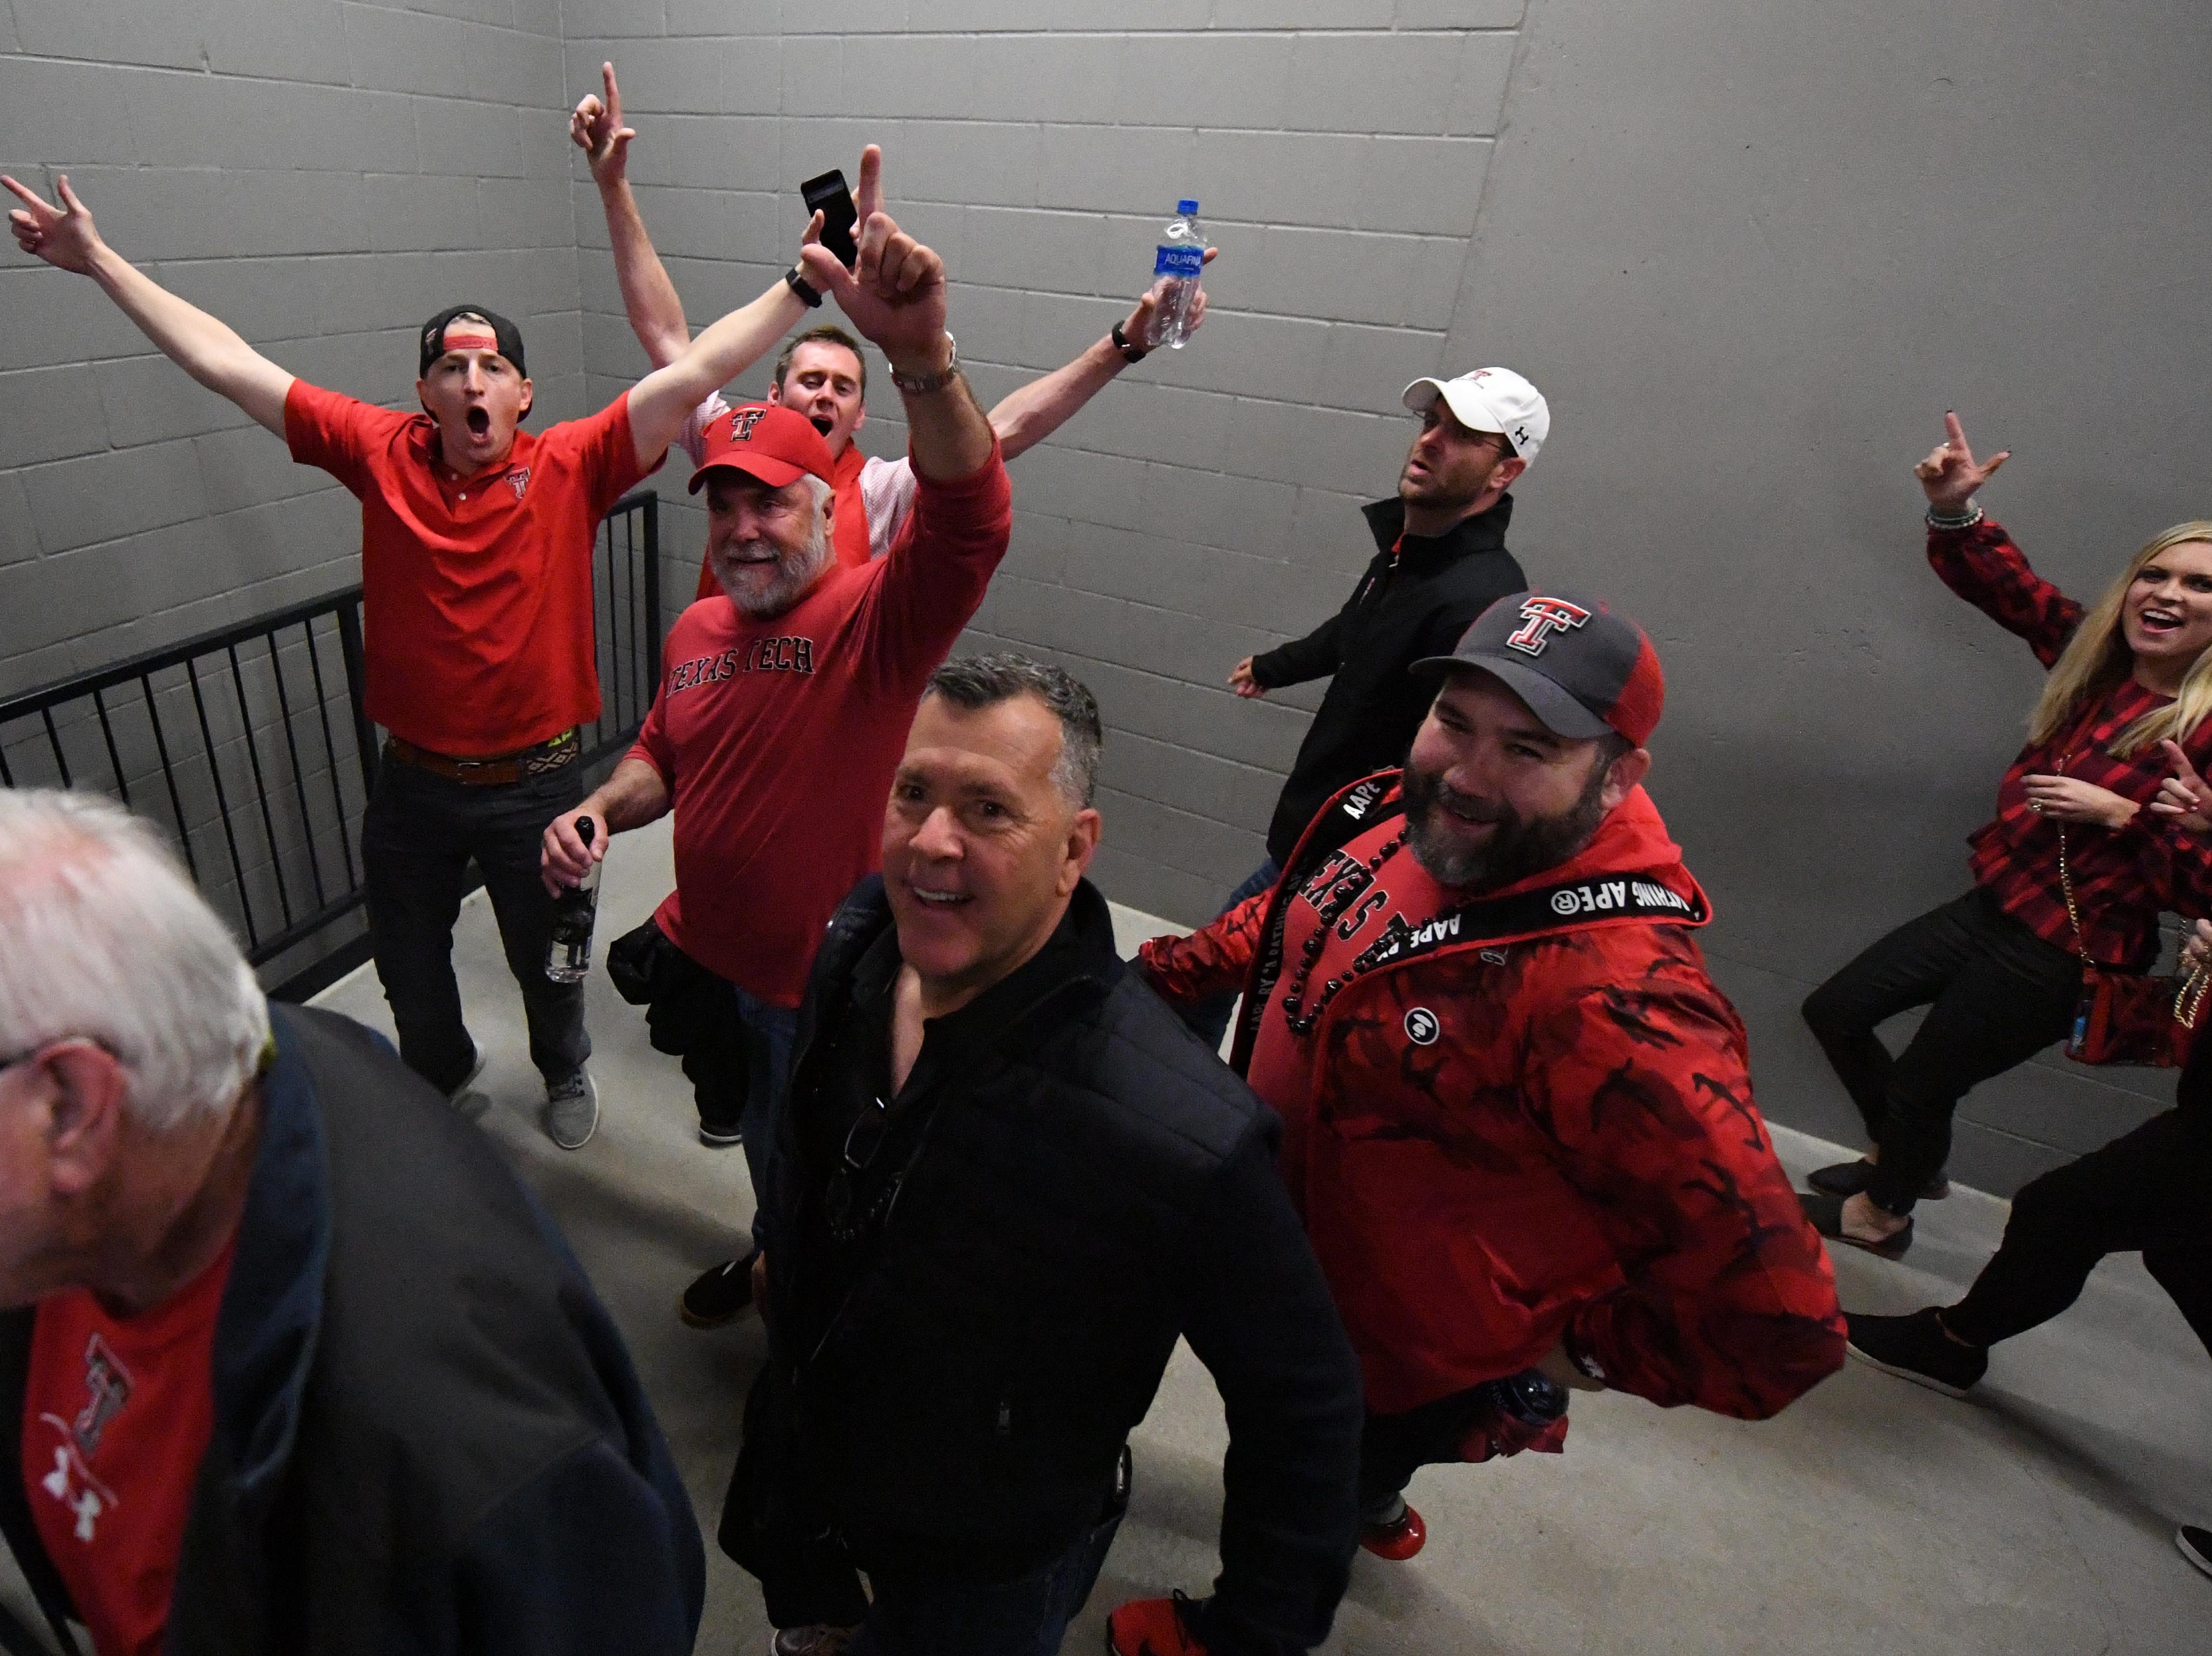 Apr 6, 2019; Minneapolis, MN, USA; Texas Tech Red Raiders fans celebrate after the semifinals of the 2019 men's Final Four against the Michigan State Spartans at US Bank Stadium. Mandatory Credit: Shanna Lockwood-USA TODAY Sports